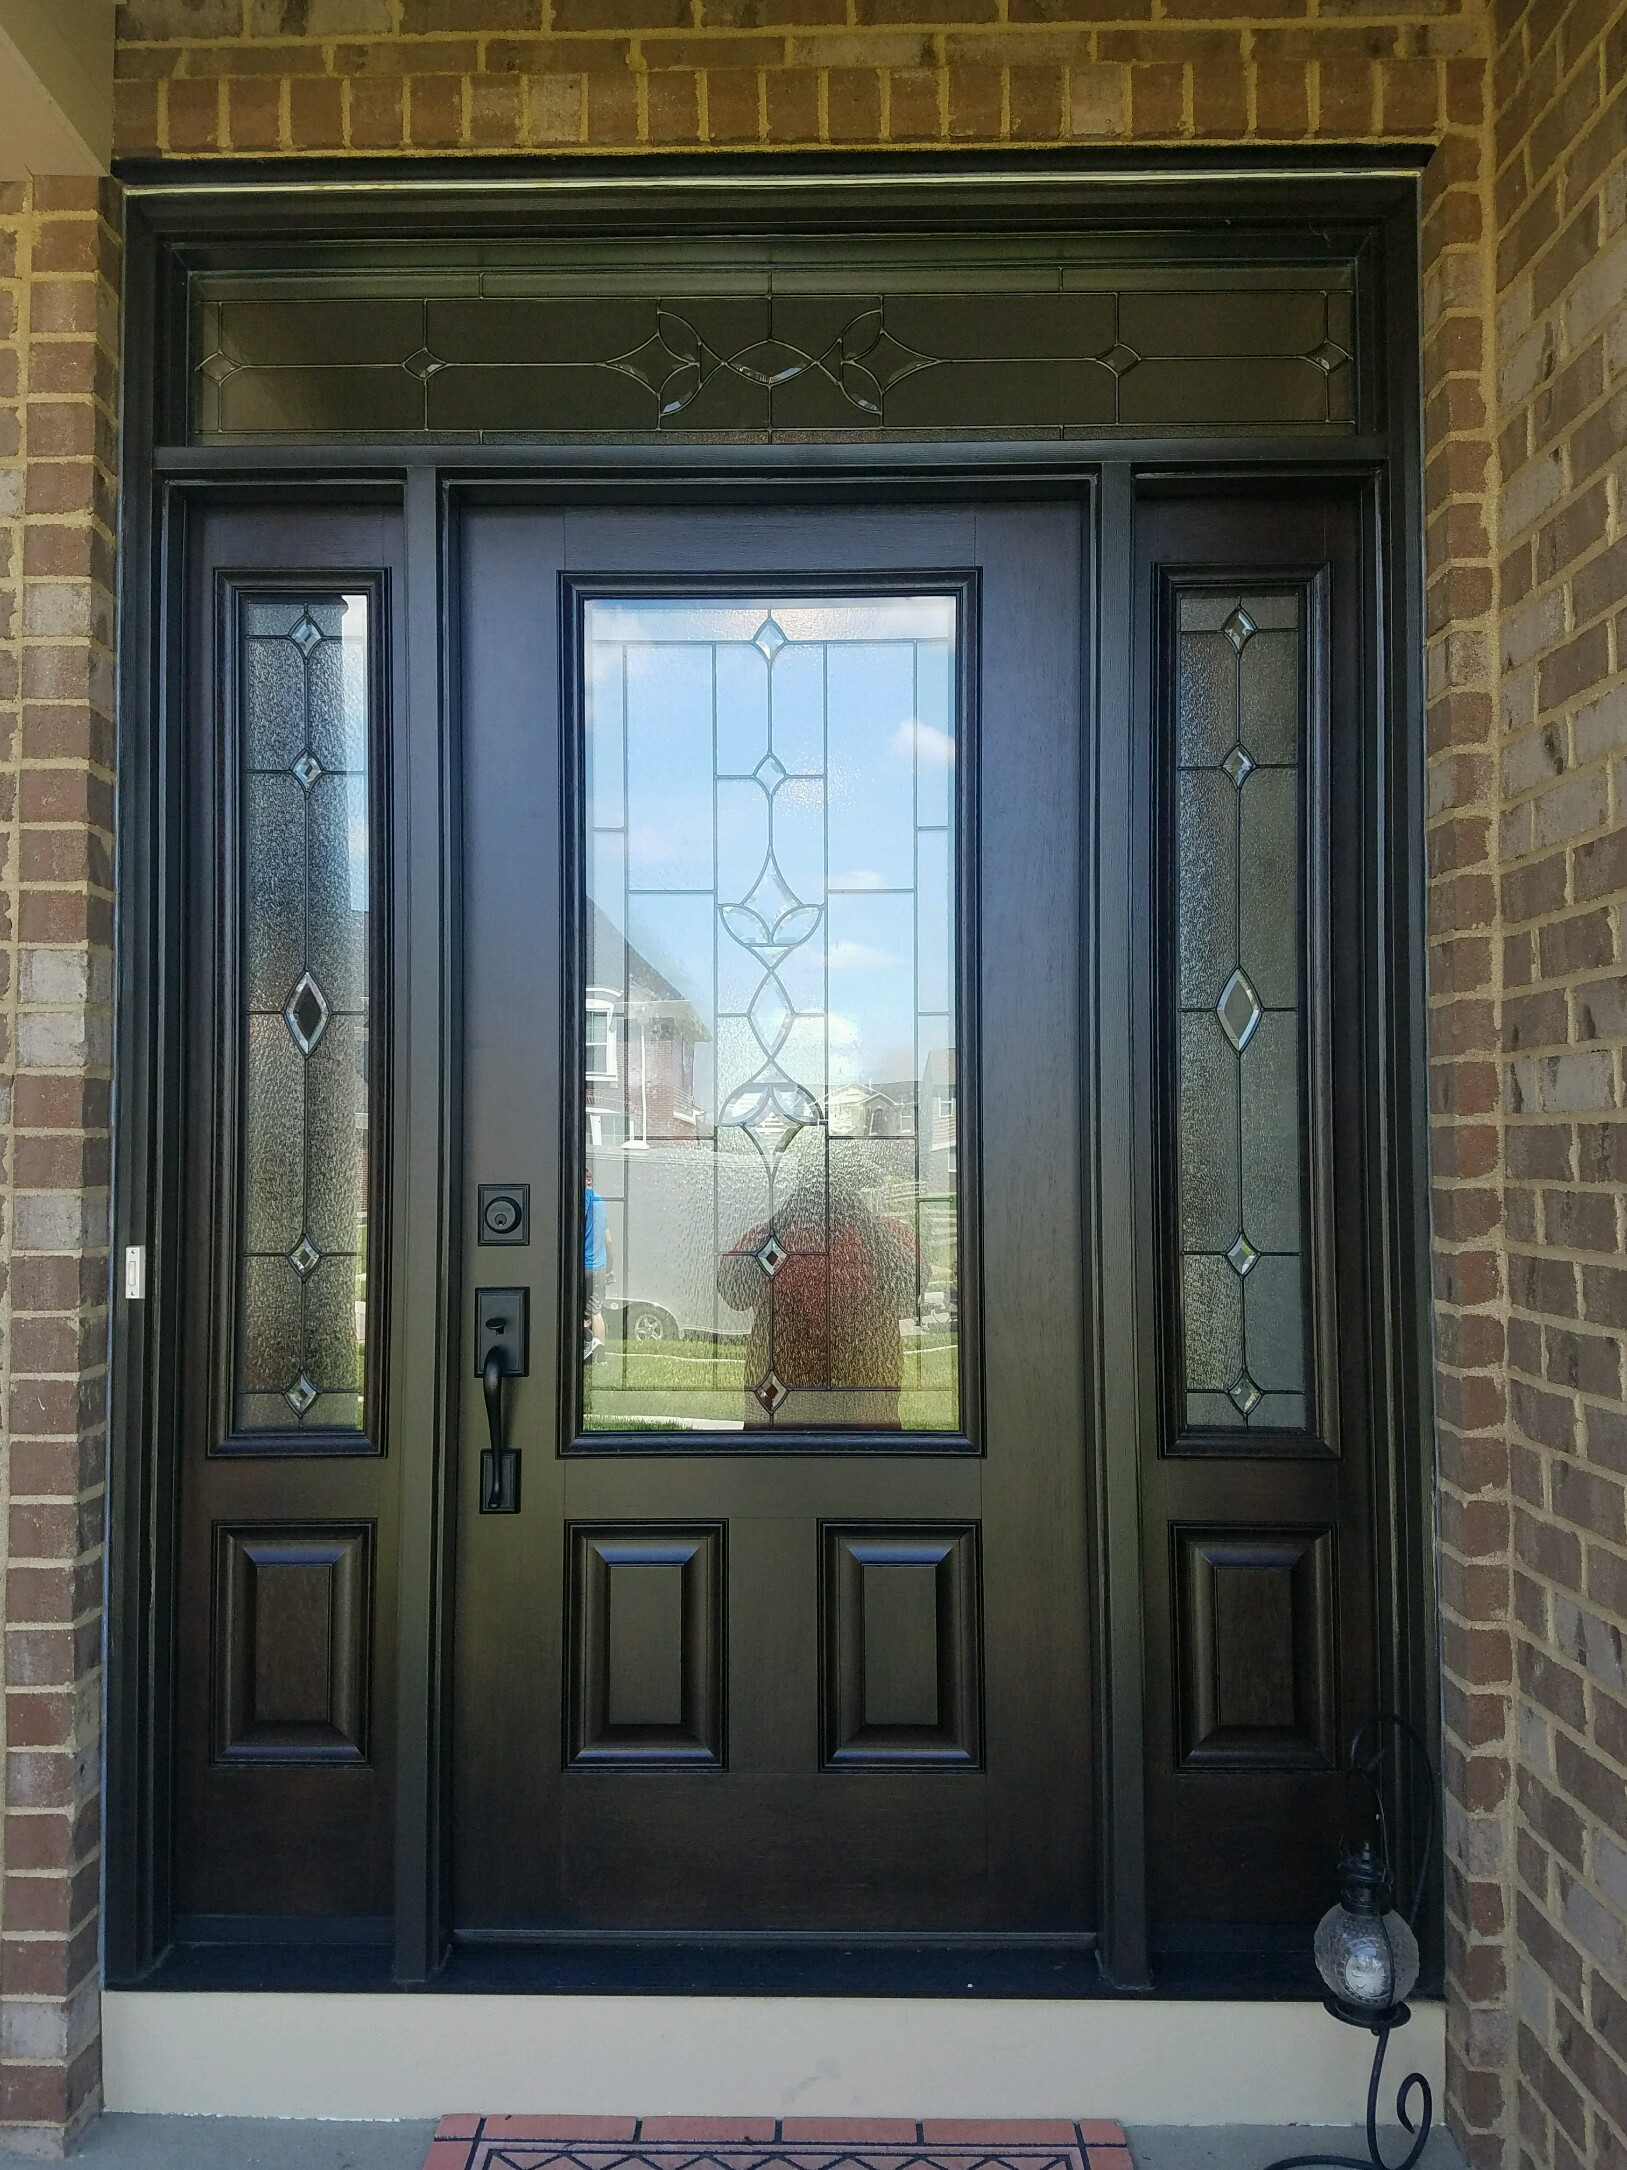 Jfk Window And Door Front Door Friday In Harrison For A